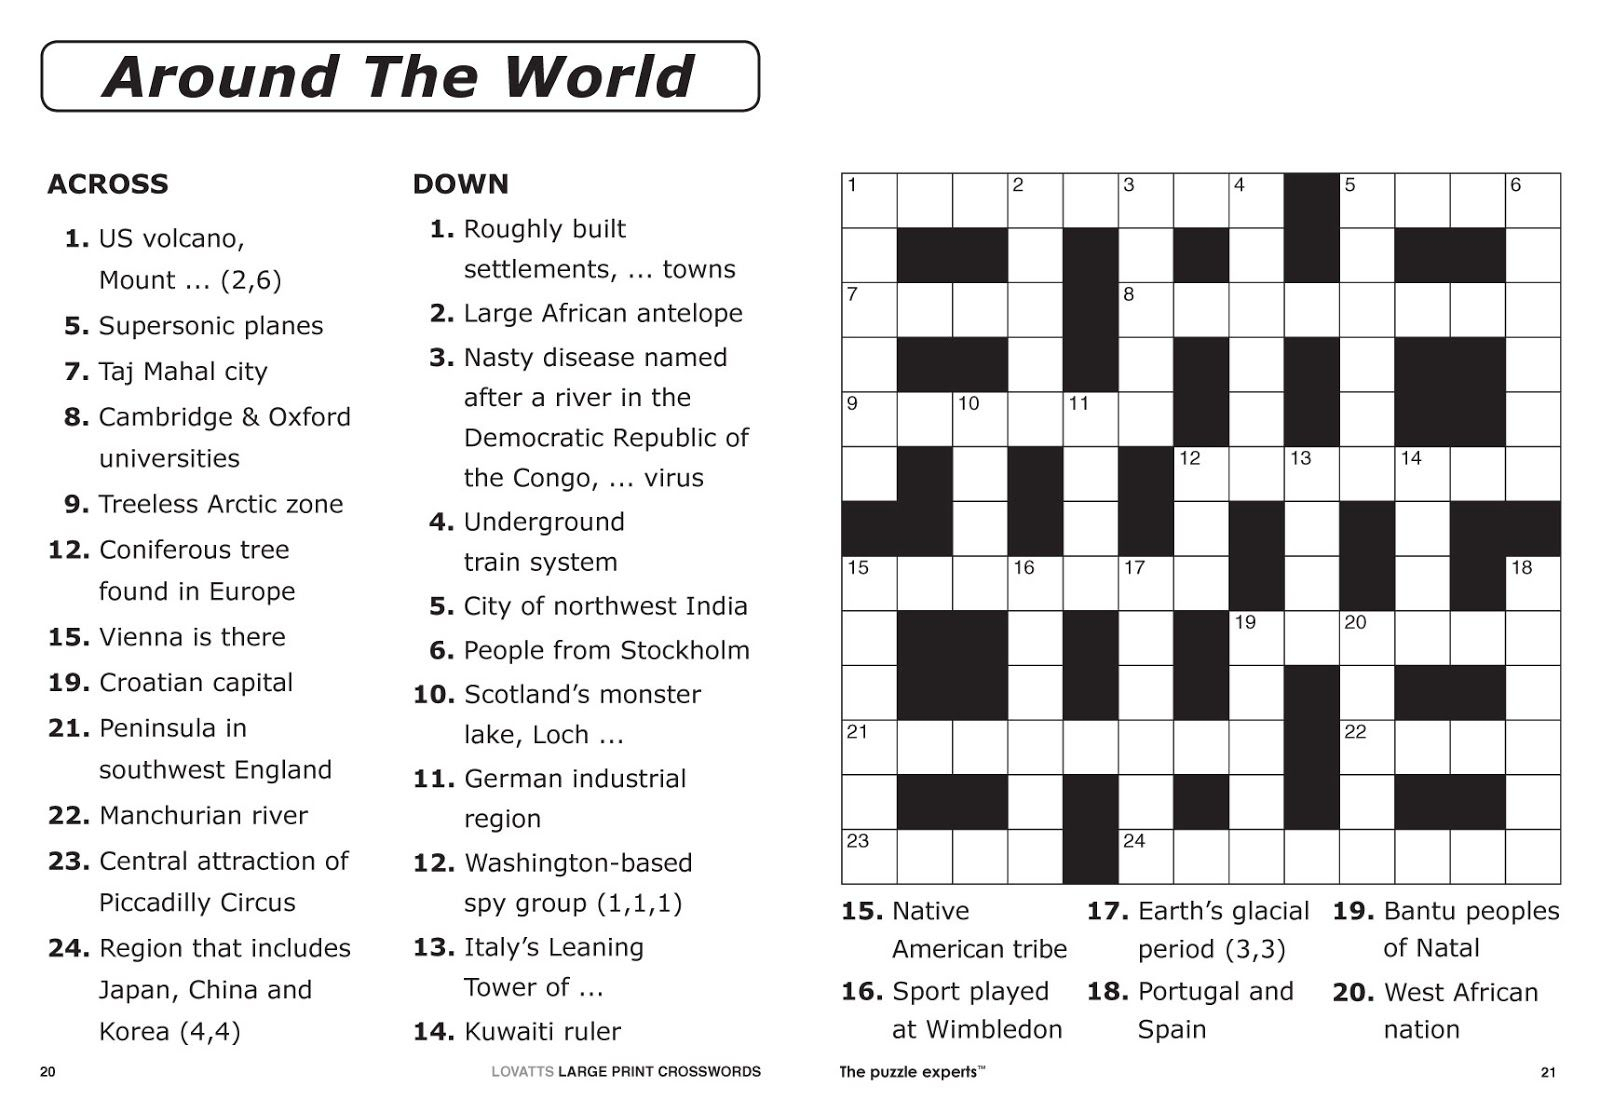 photo regarding Printable Crossword Puzzles Pdf called Basic Printable Crossword Puzzles \